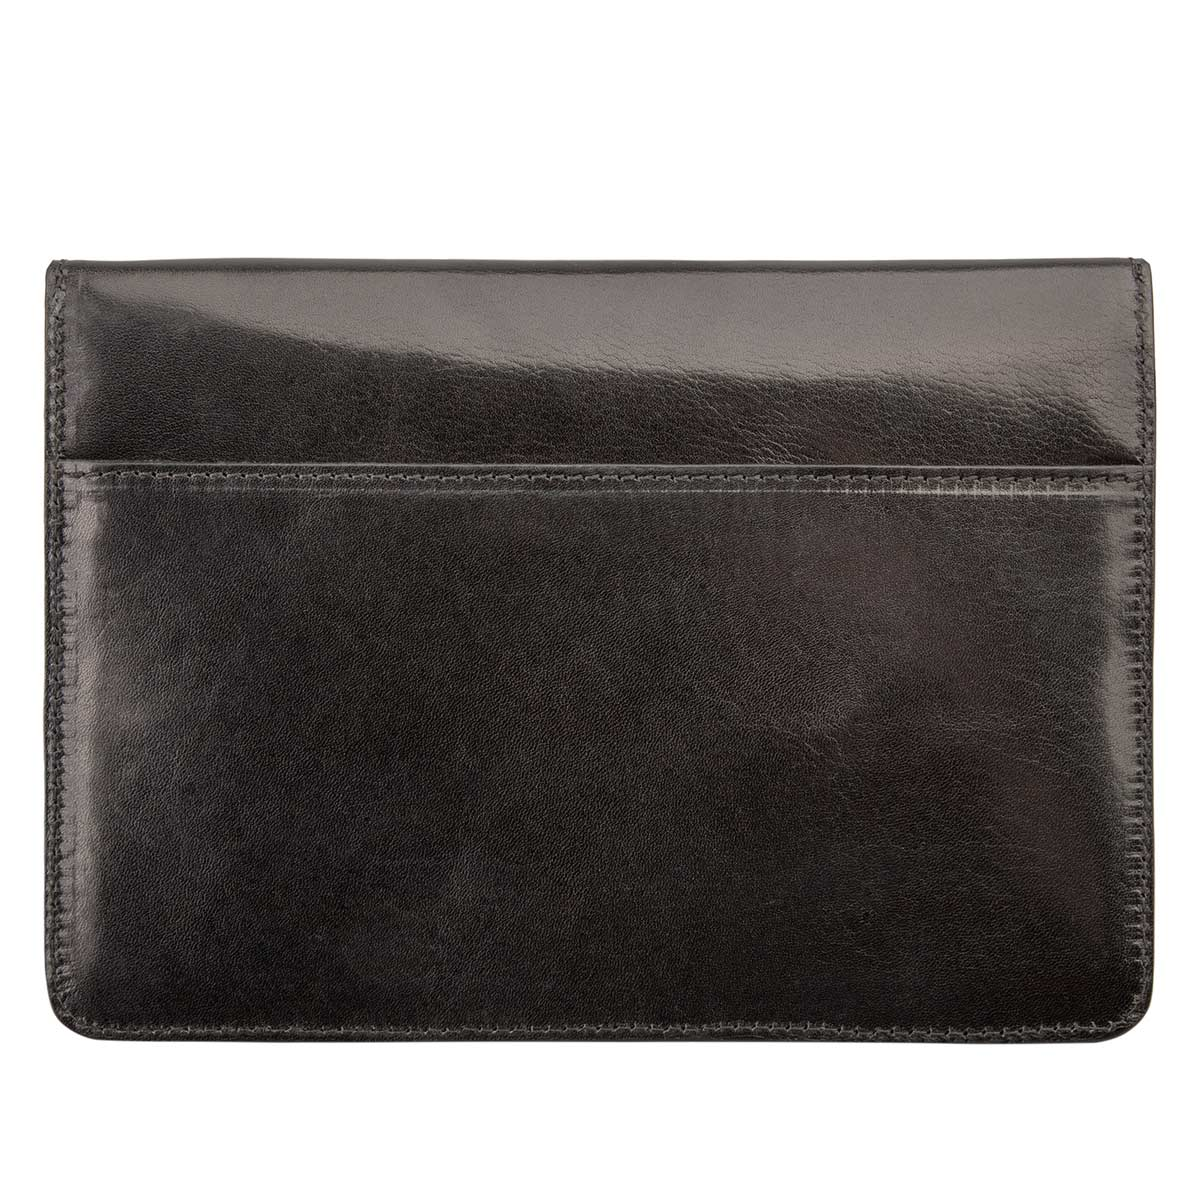 Image 3 of the 'Torrino' Black Veg-Tanned Leather Travel Wallet